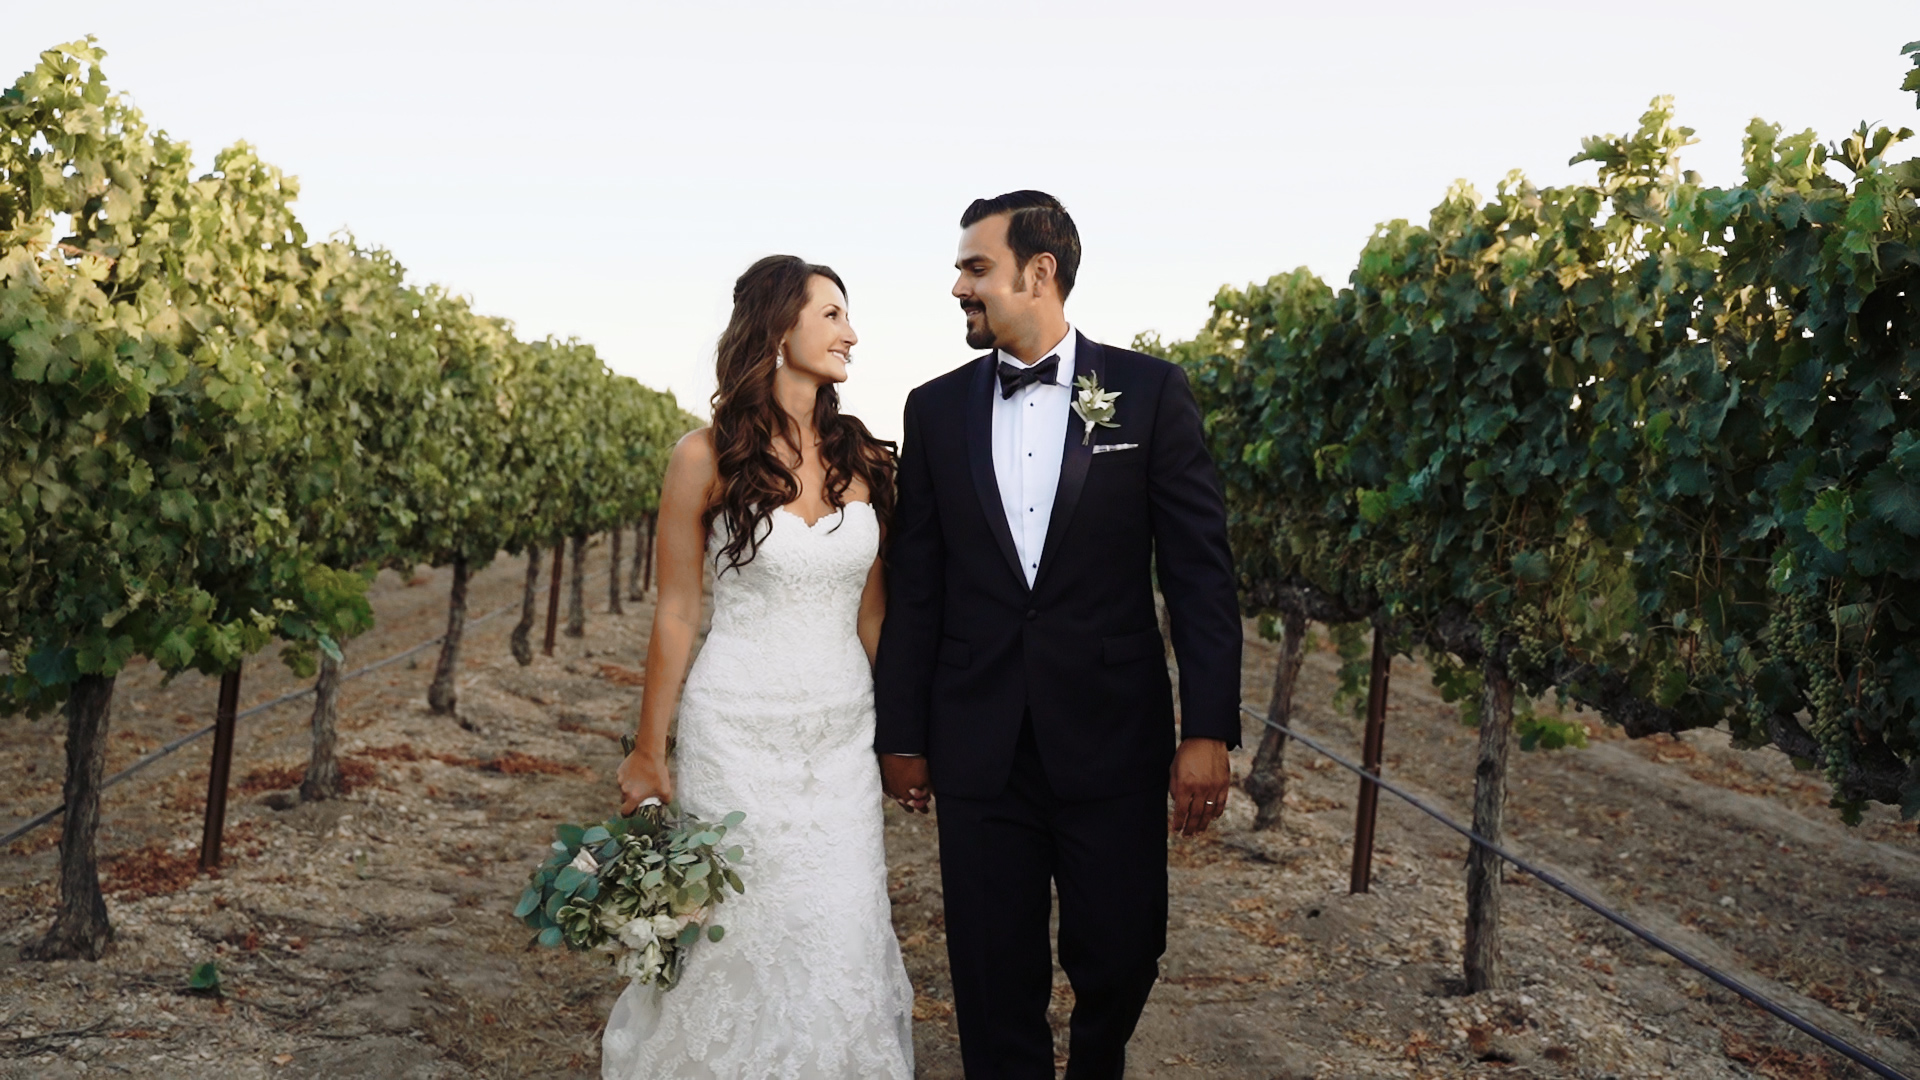 Katie  + Dano | Santa Barbara, California | Firestone Vineyard